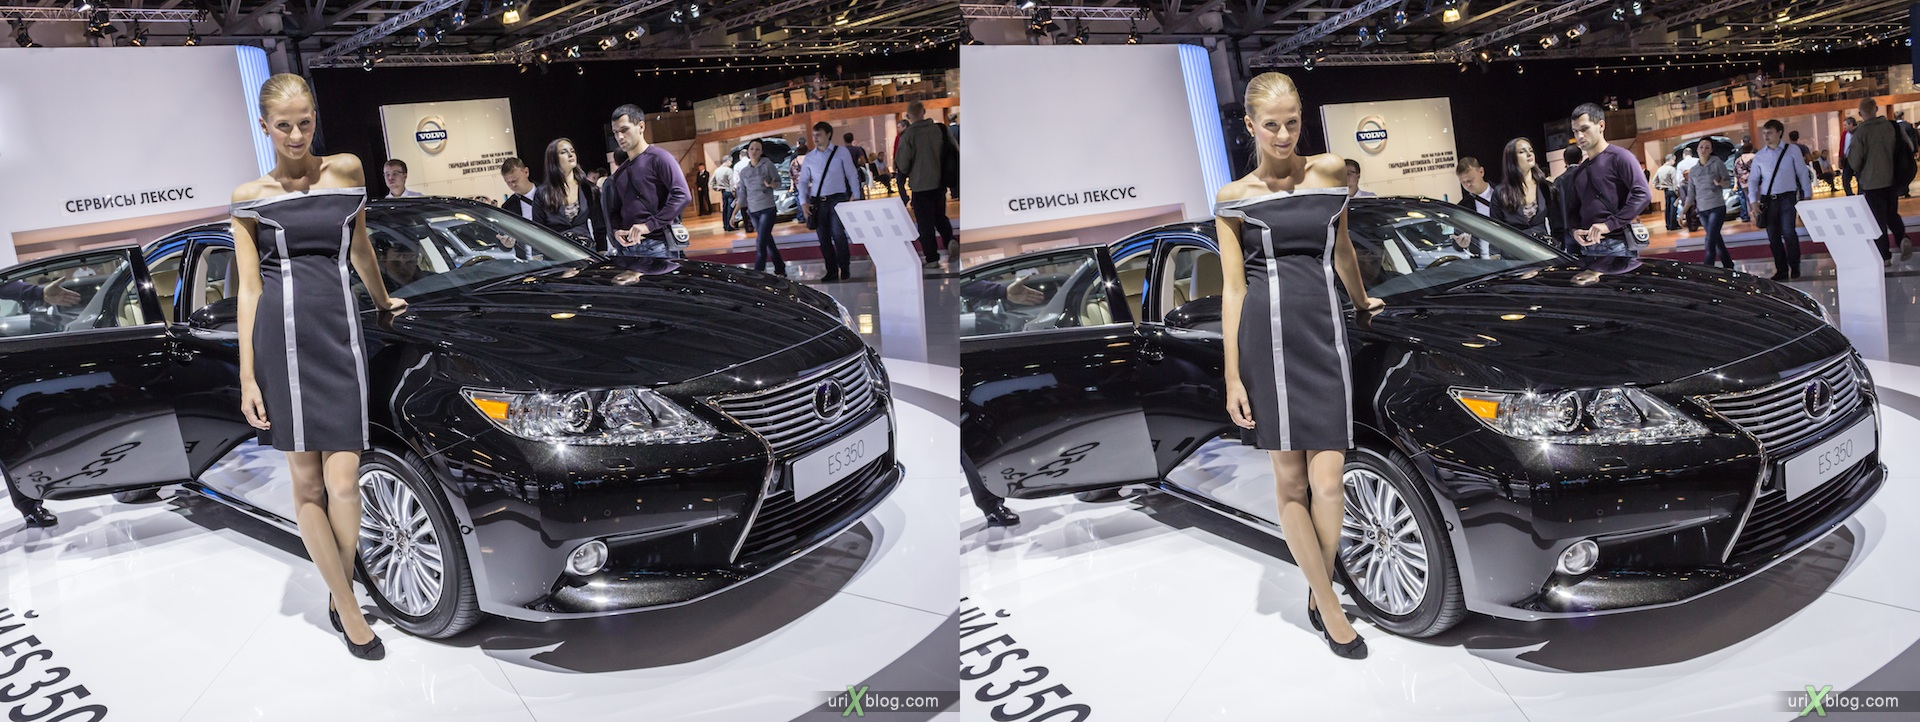 2012, Lexus ES 350, девушка, модель, girl, model, Moscow International Automobile Salon, auto show, 3D, stereo pair, cross-eyed, crossview